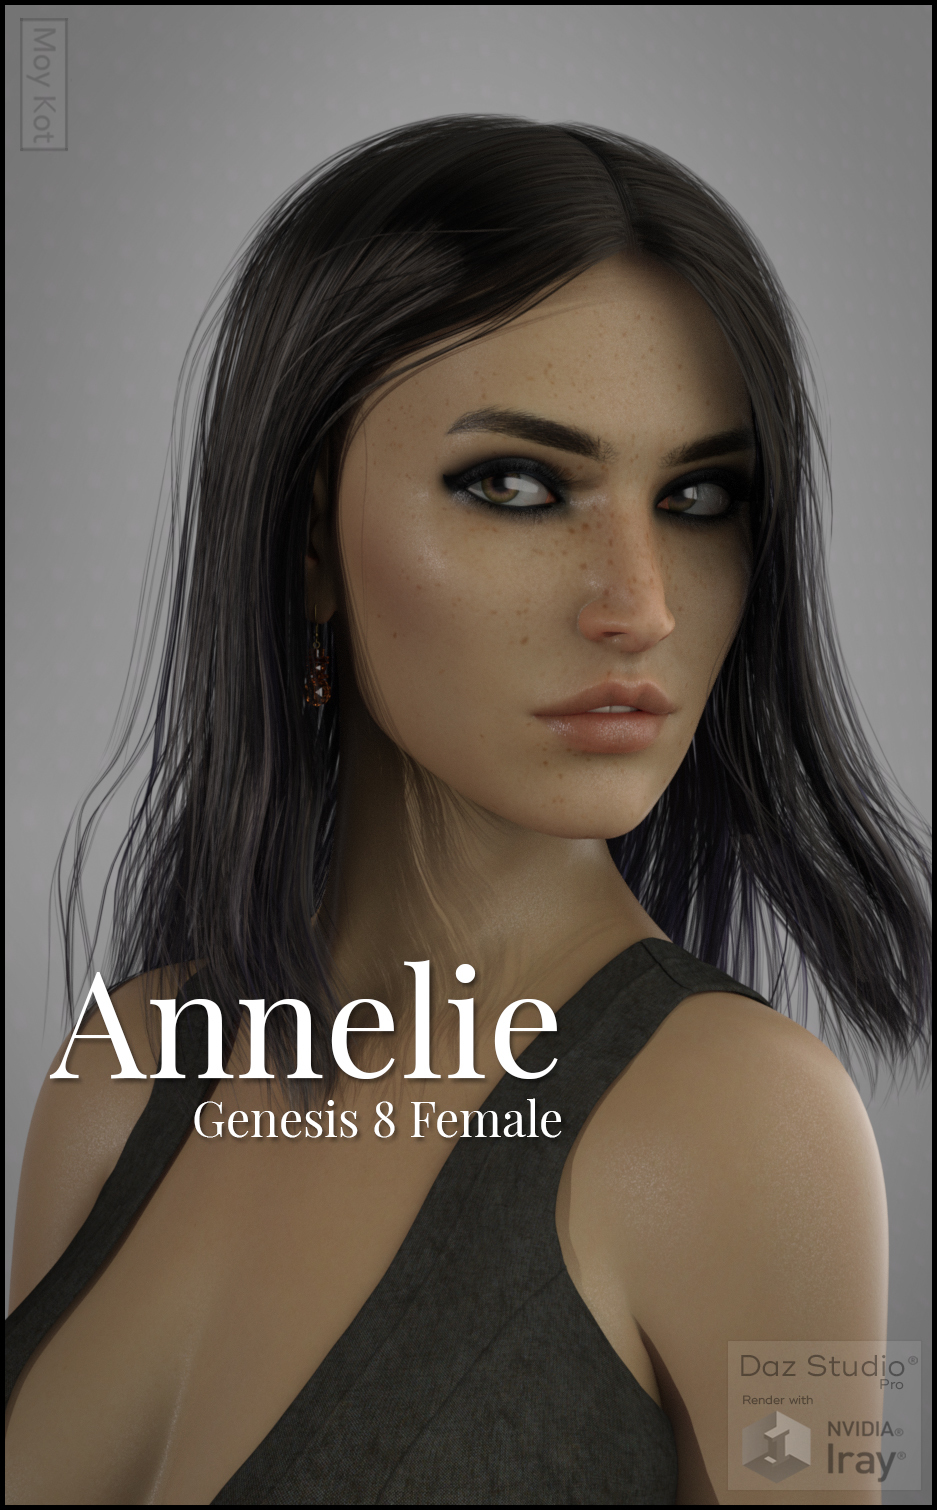 MYKT Annelie for Genesis 8 Female